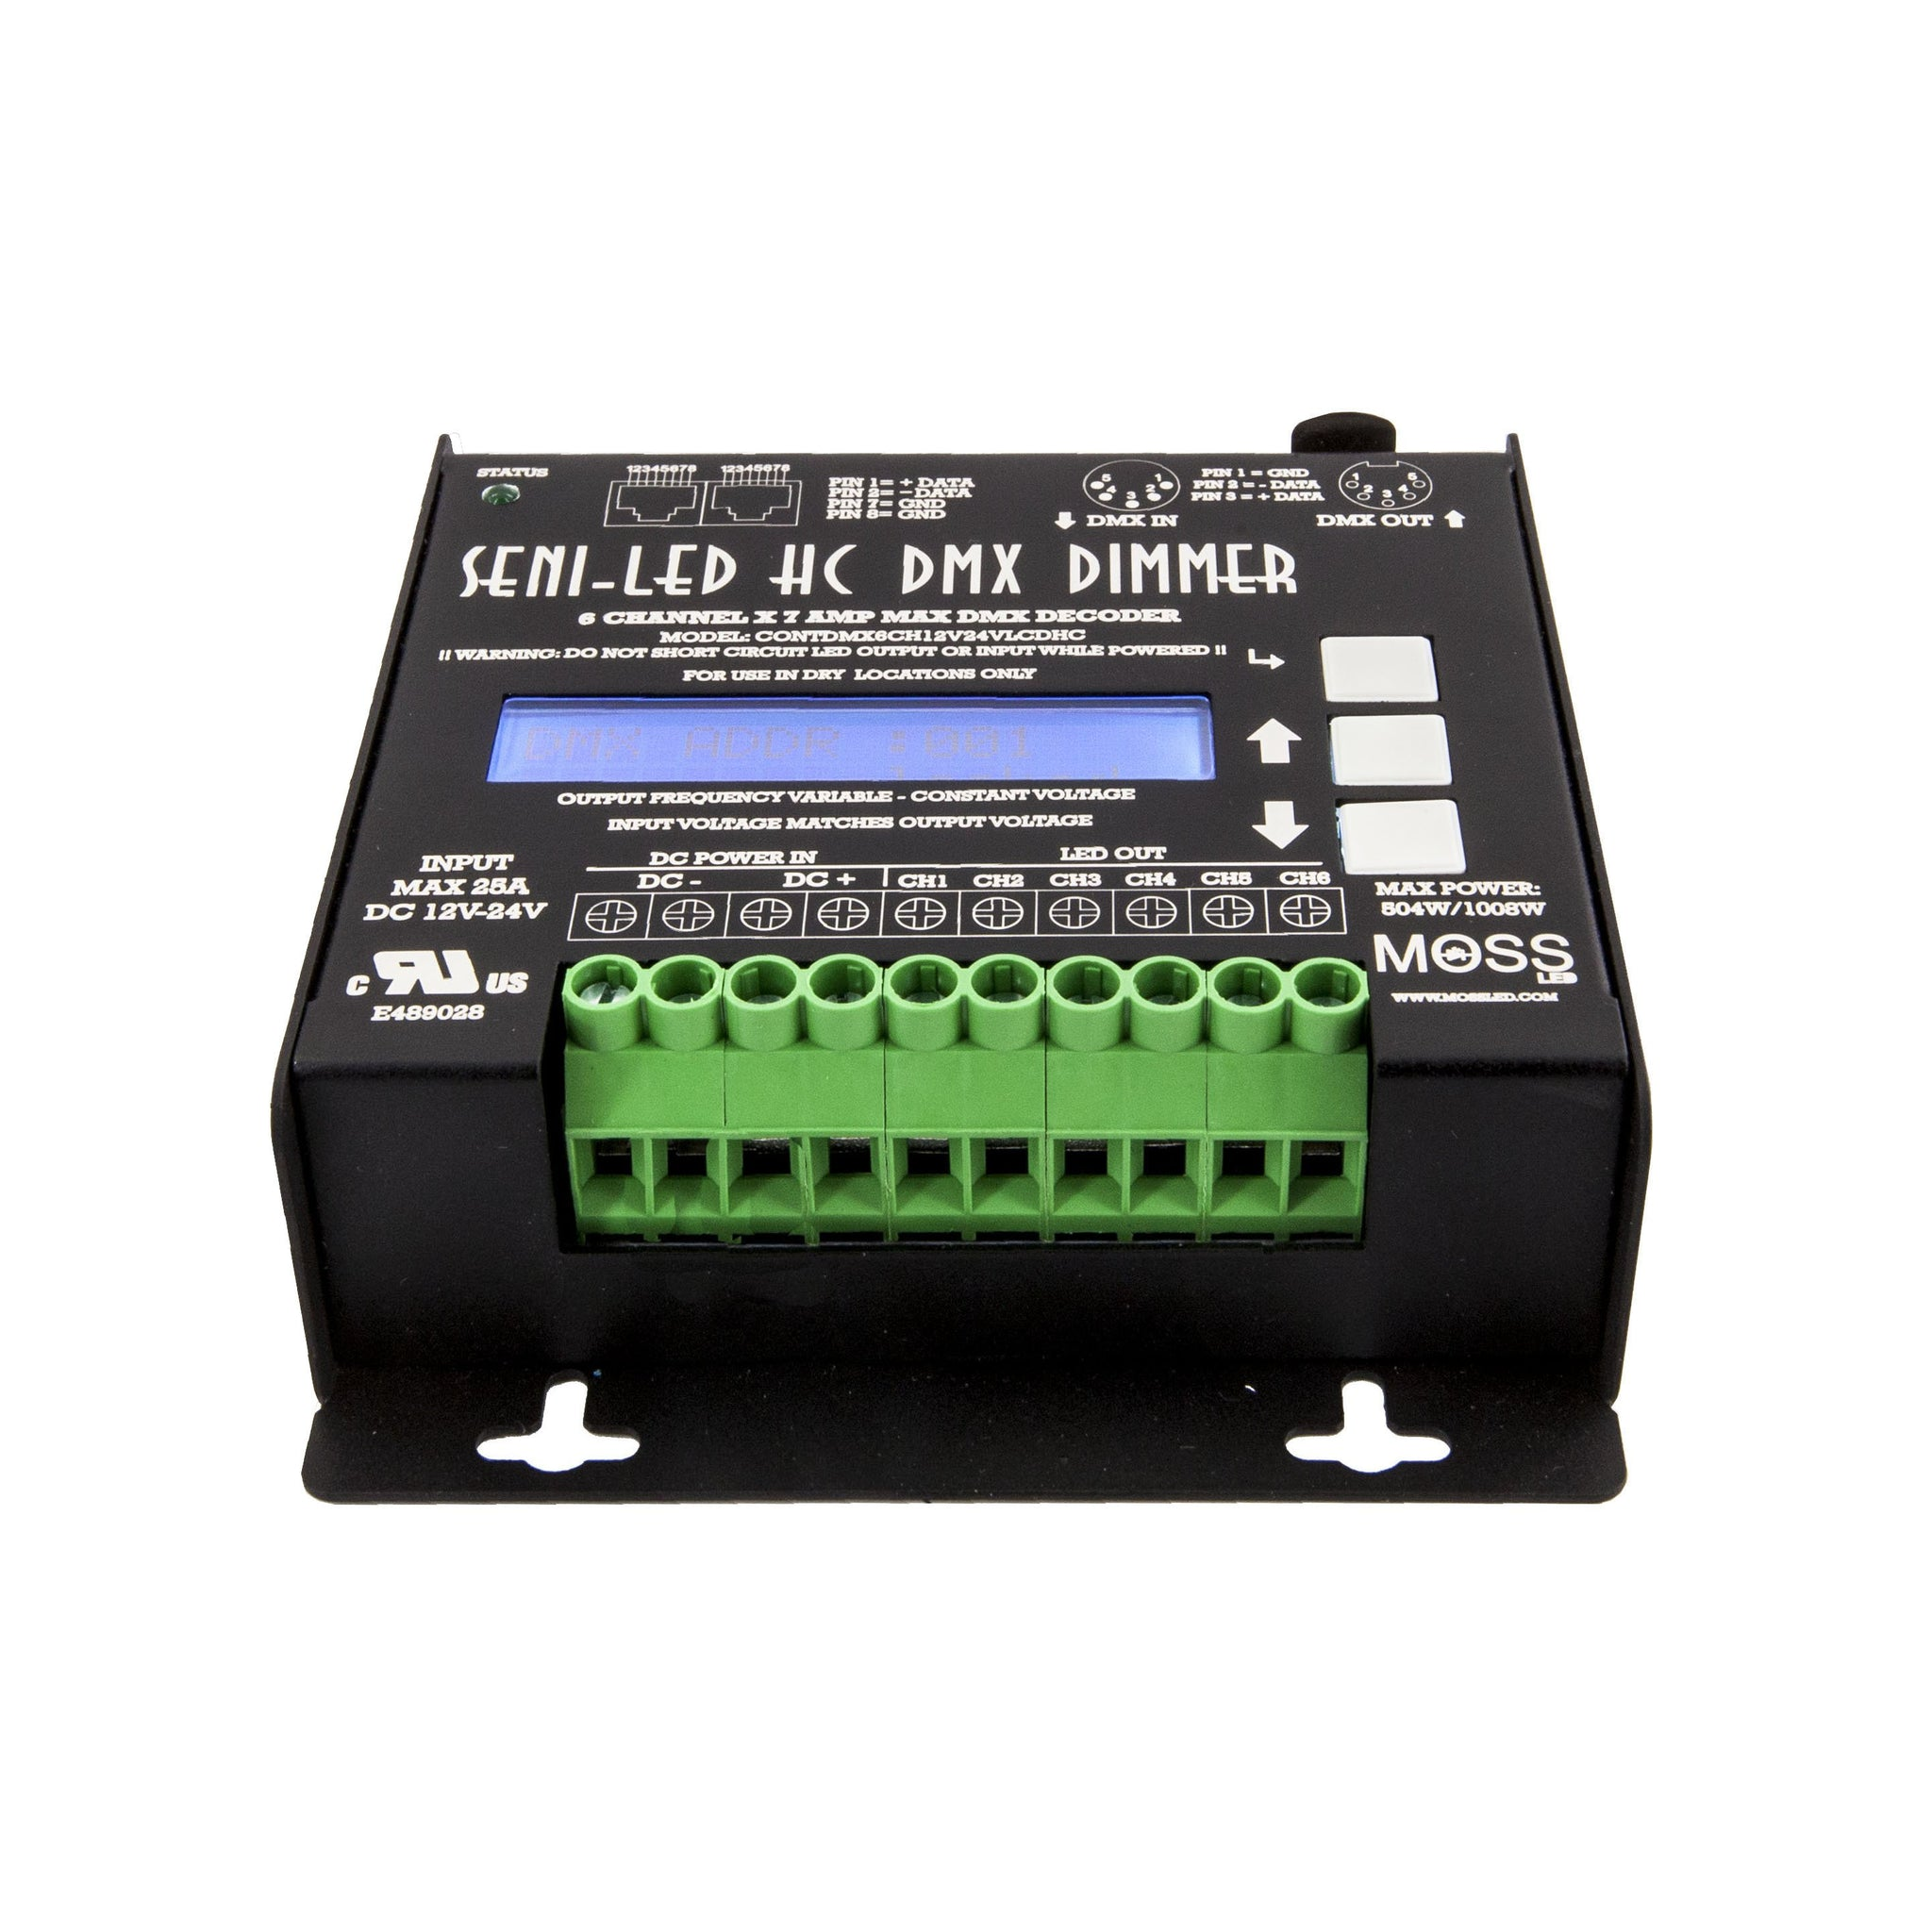 Seni Led High Current Dmx 6 Channel Dimmer Moss Rgb Pwm Driver For Power 350ma Leds V3 Using Pic12f629